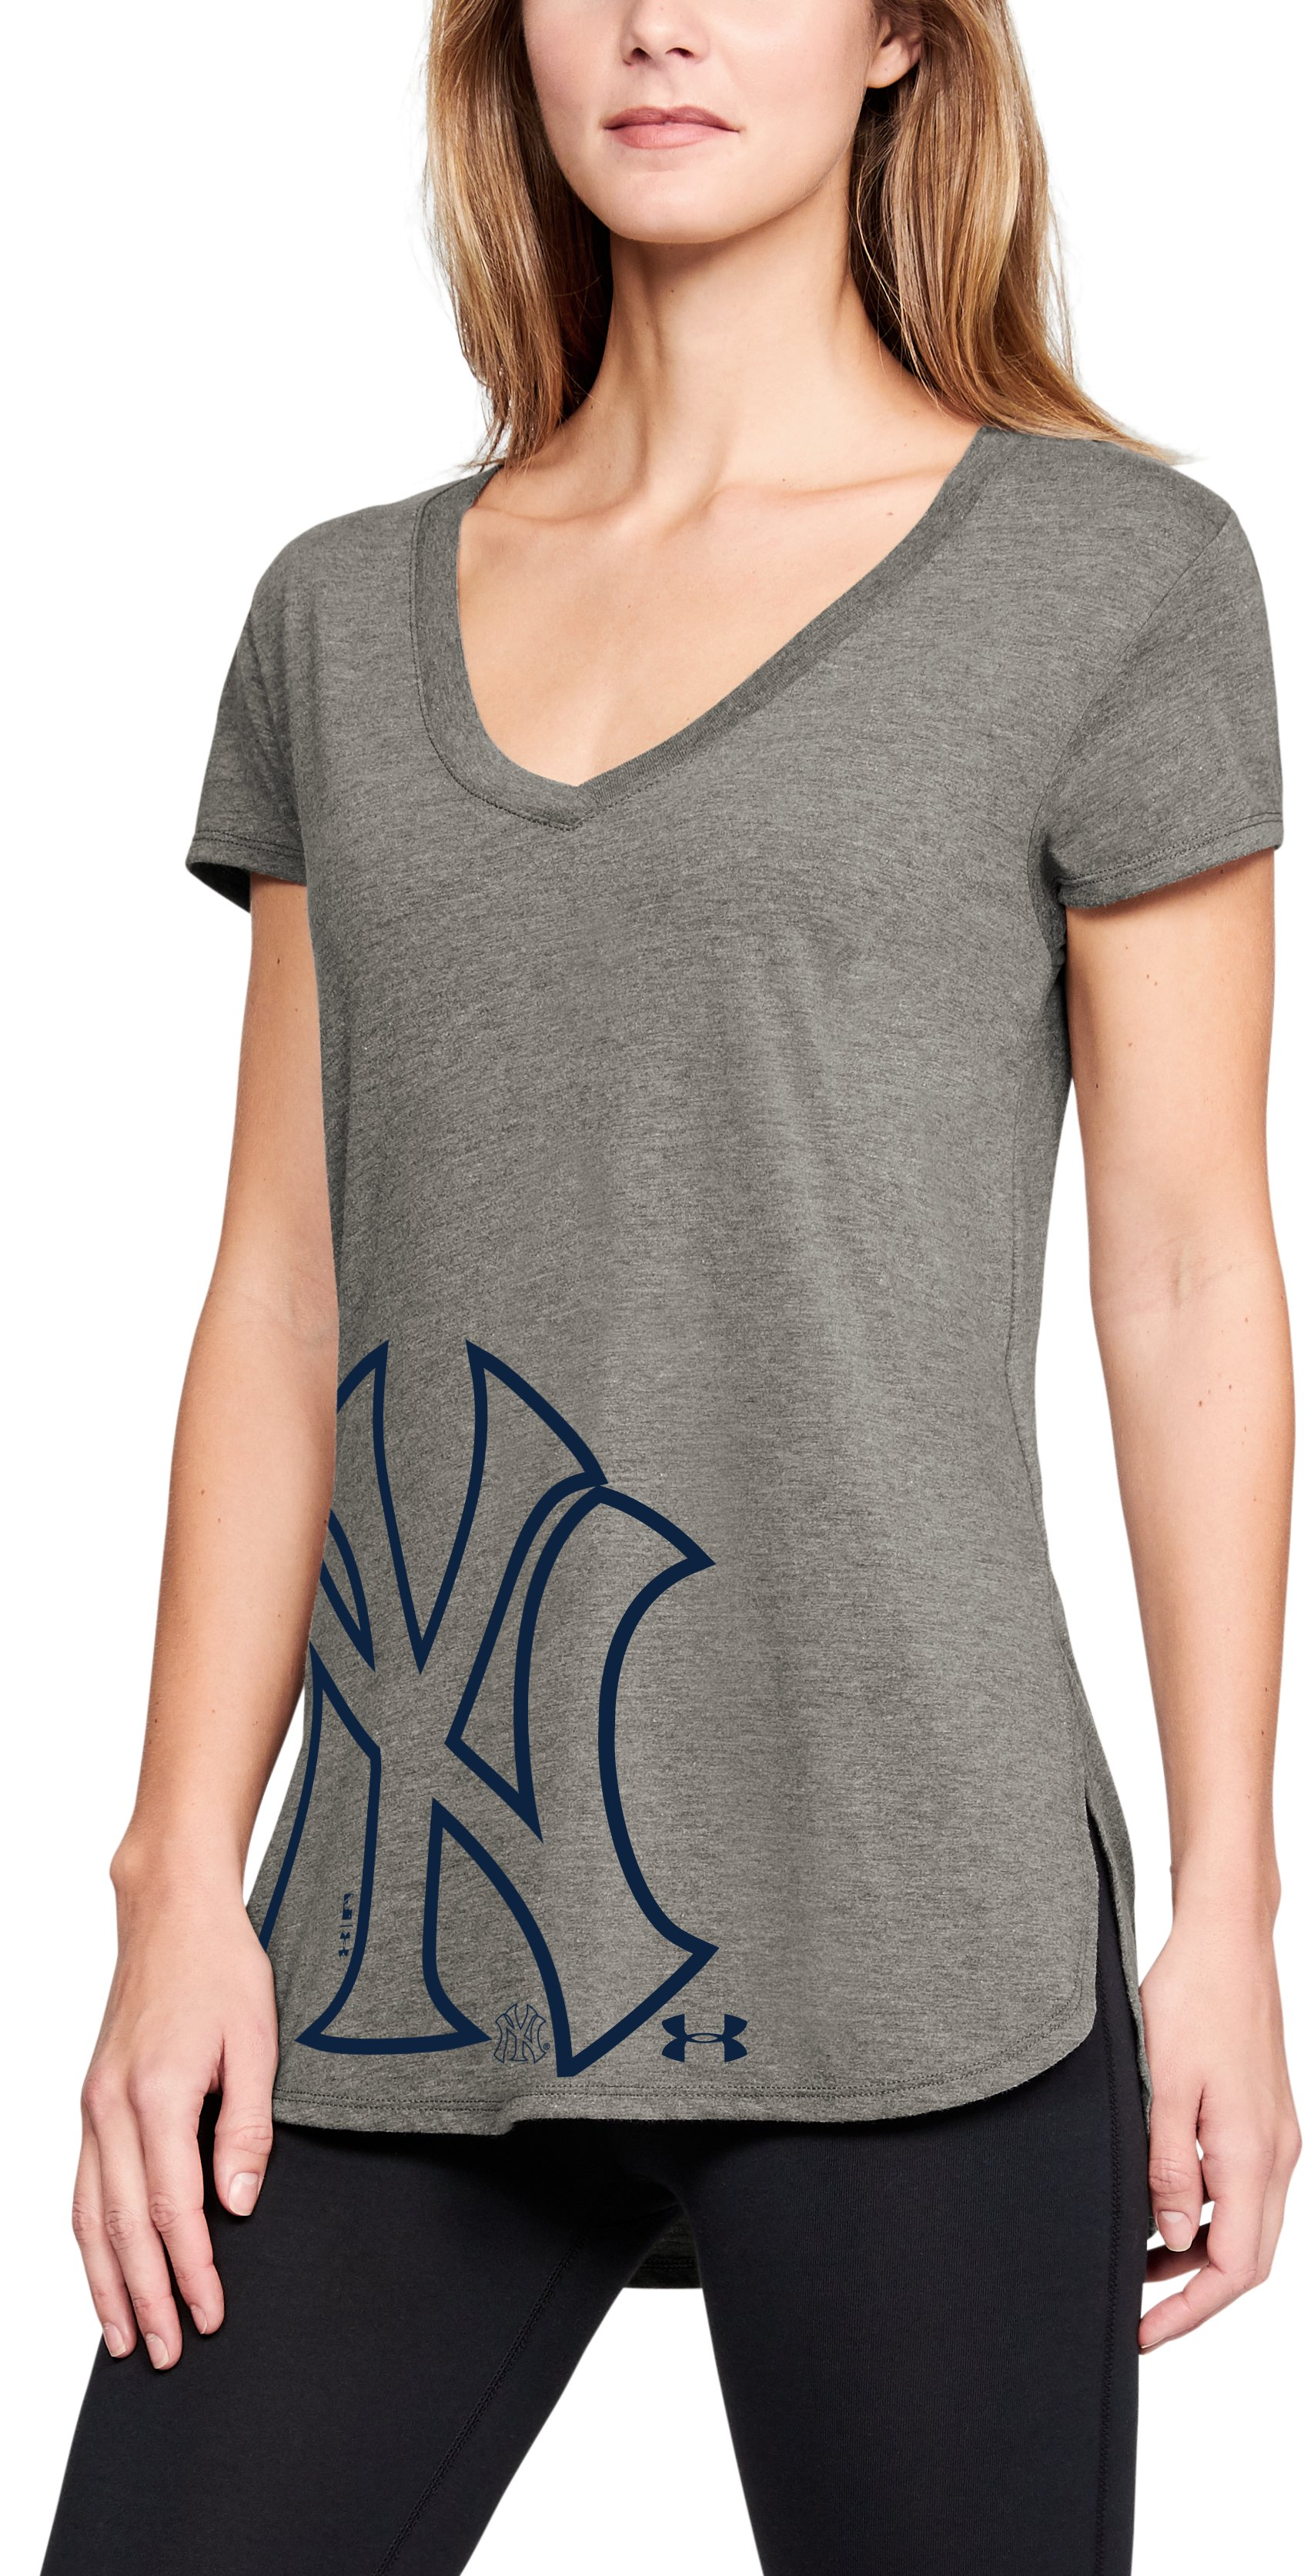 Women's MLB UA Tri-Blend Offset Short Sleeve, MLB_NYY_Steel Heather,